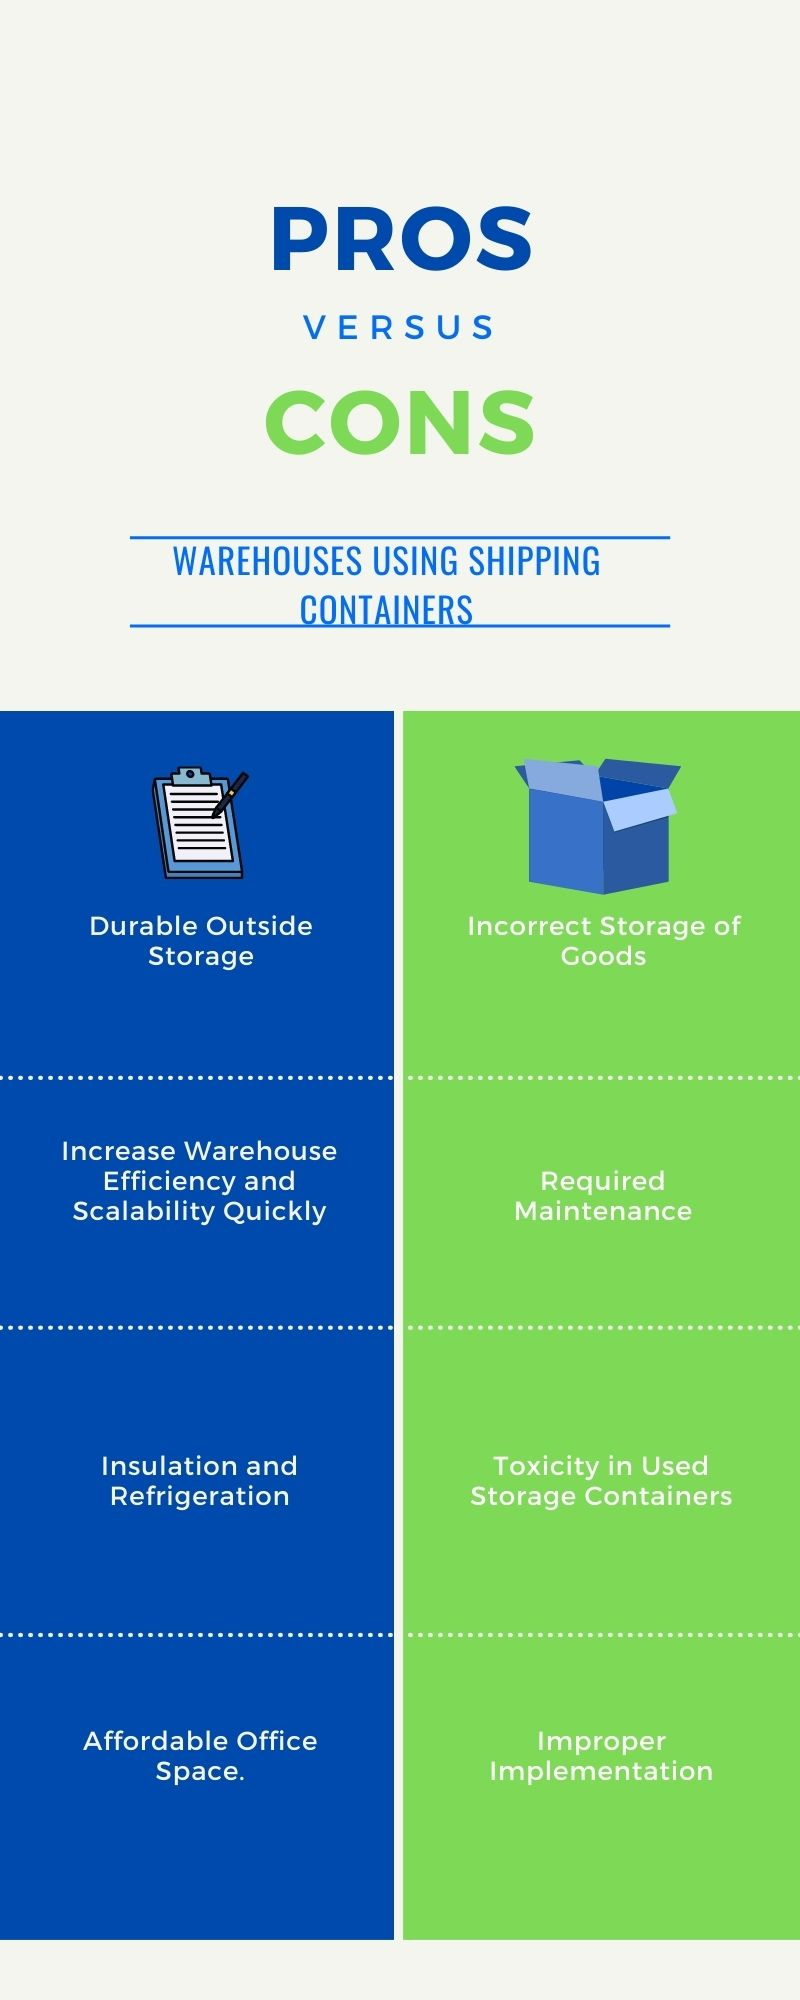 warehouses using shipping containers